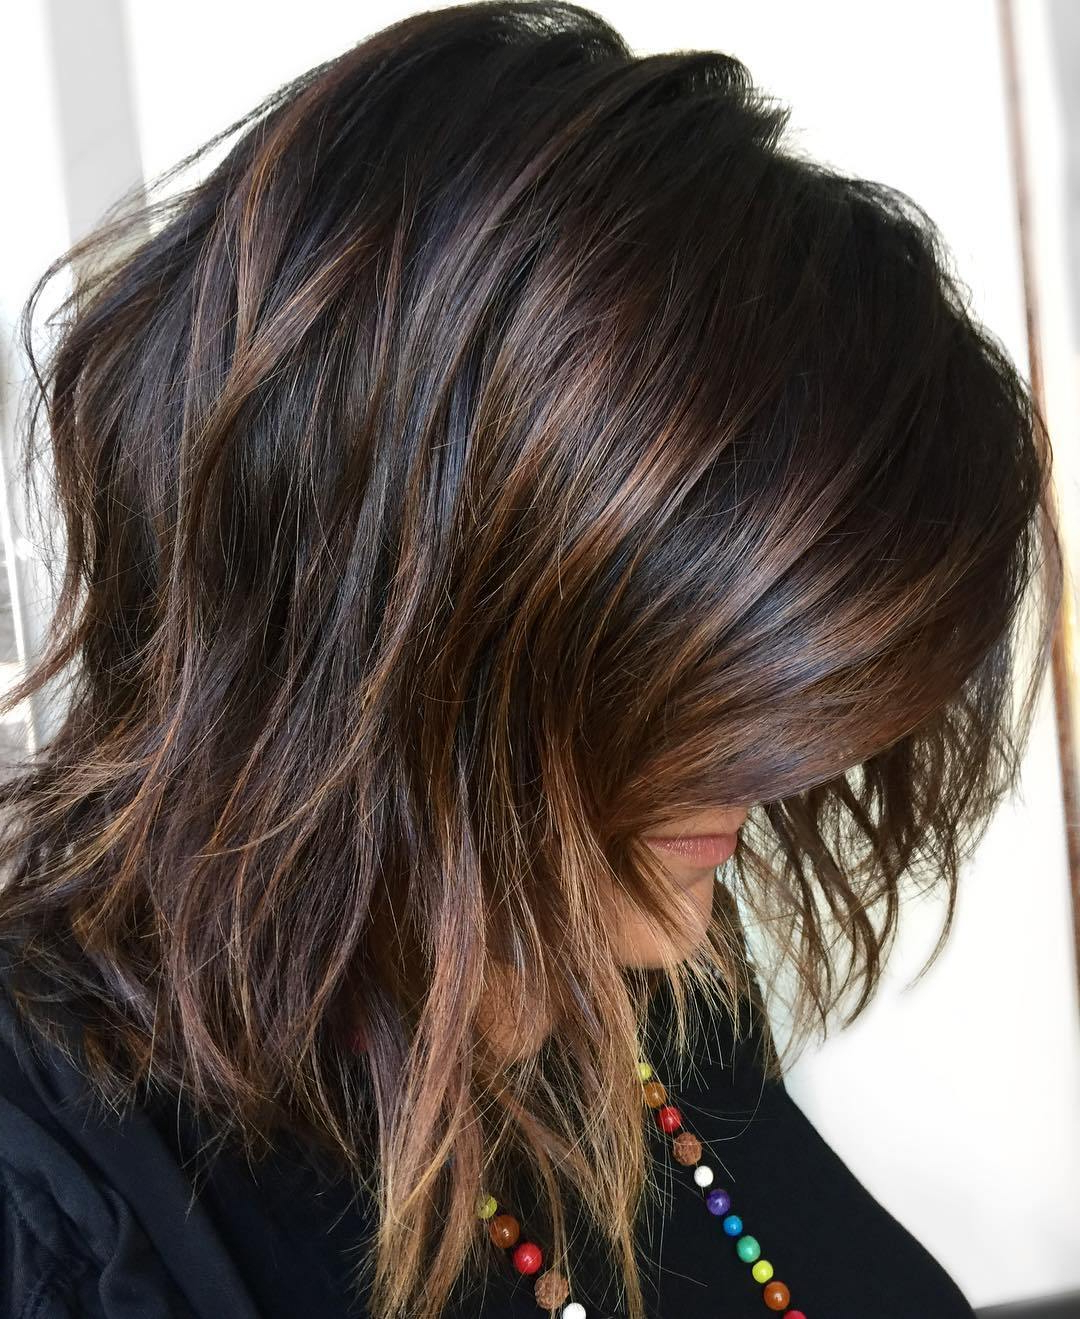 50 Fabulous Medium Length Layered Hairstyles – Hair Adviser Within Popular Medium Shaggy Brunette Hairstyles (View 6 of 20)